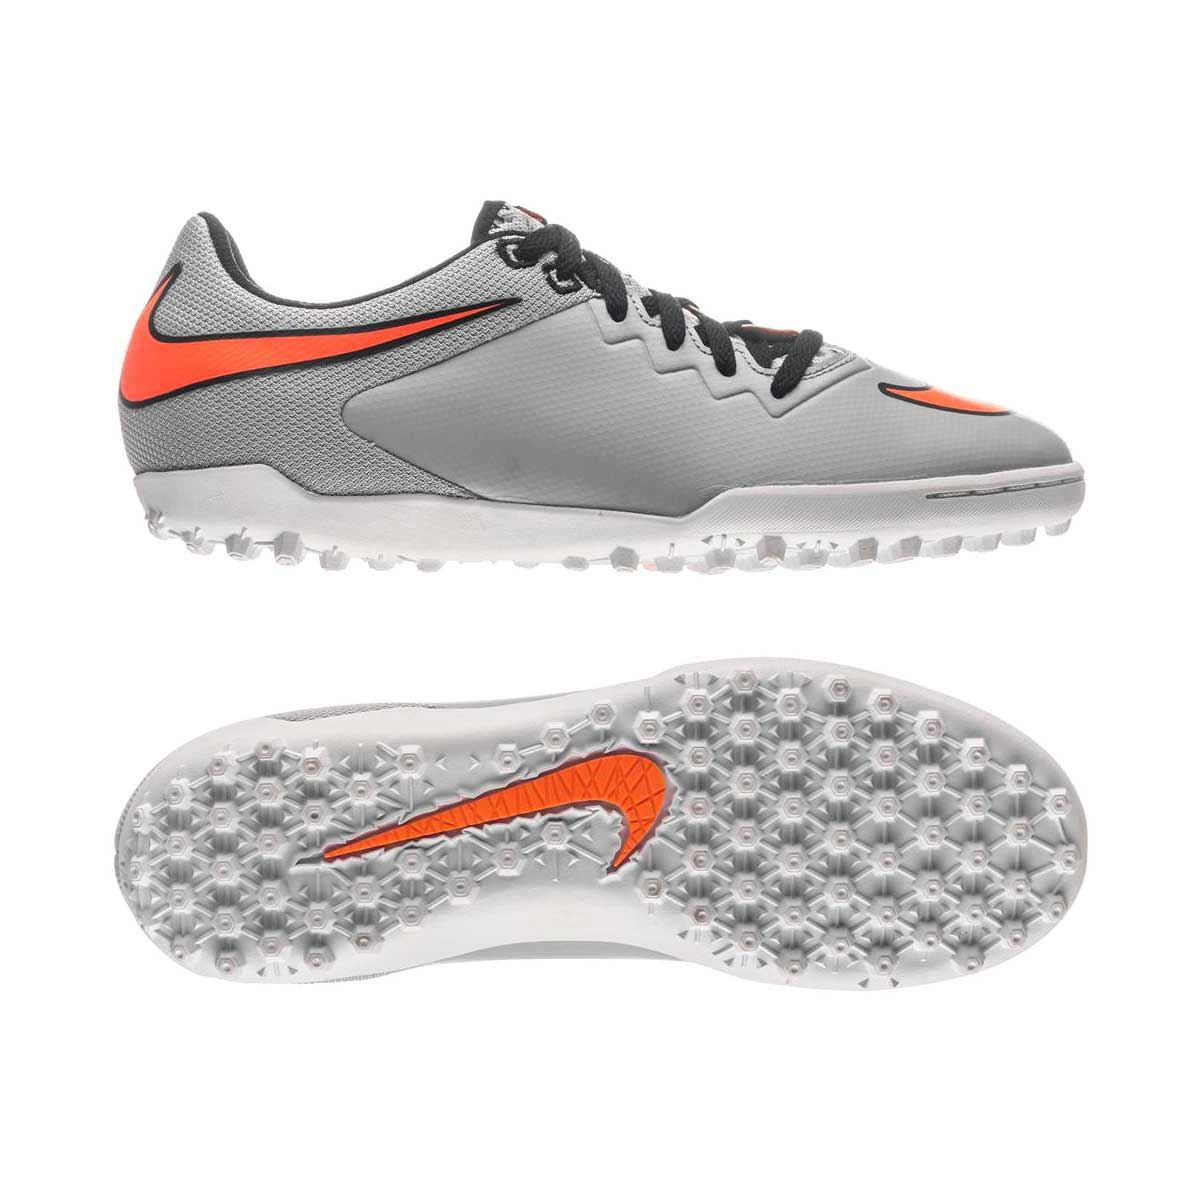 a4bcf7cd677 Buy Nike HypervenomX Pro TF Football Shoes Online India